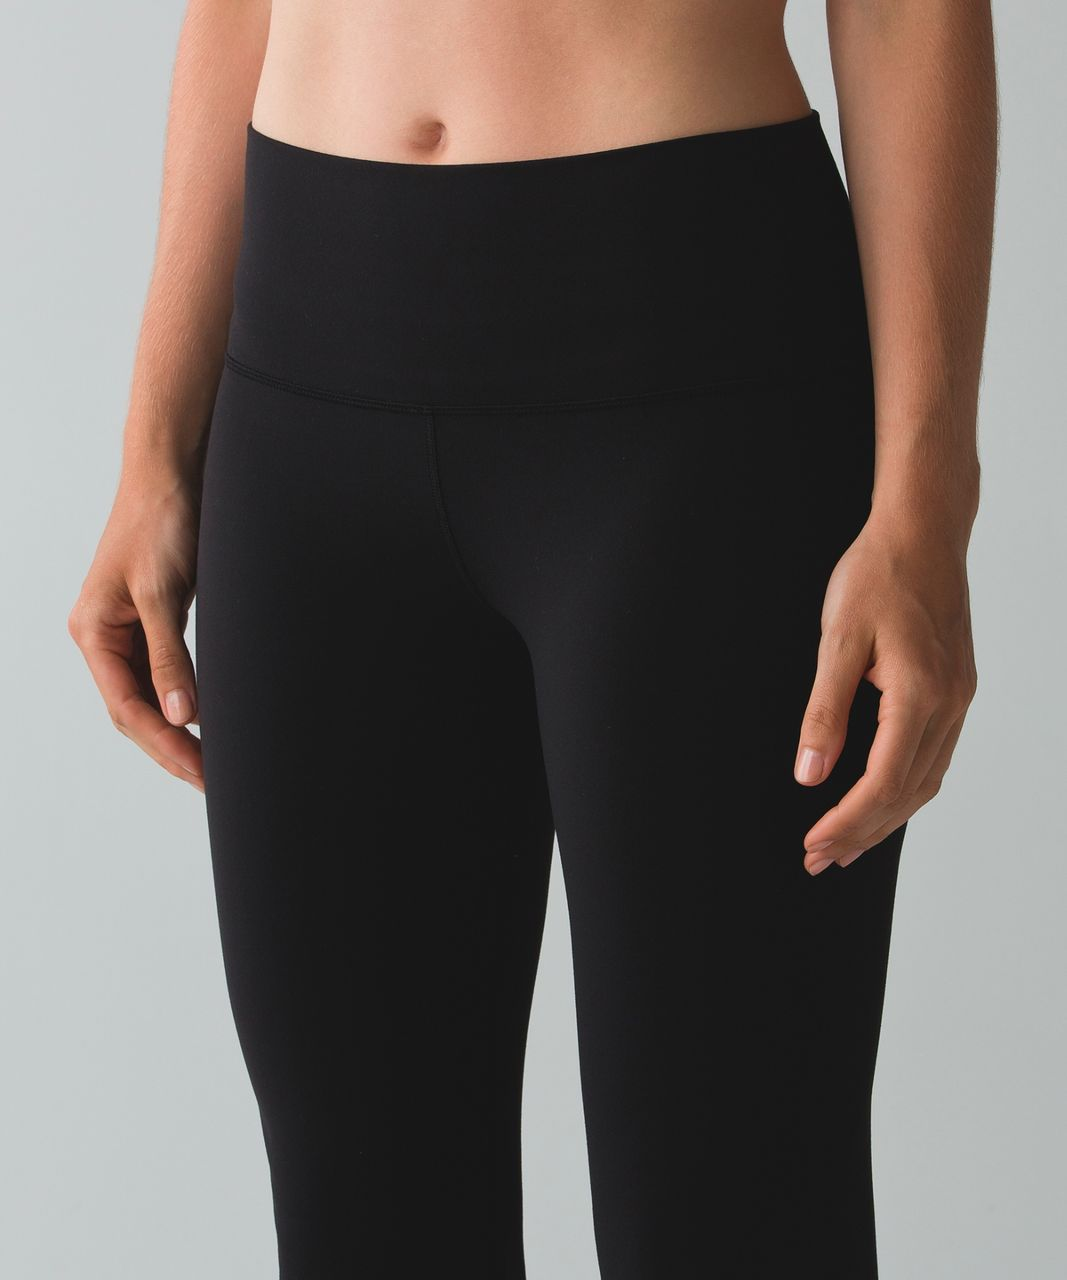 Lululemon Groove Pant III (Regular) *Full-On Luon - Black